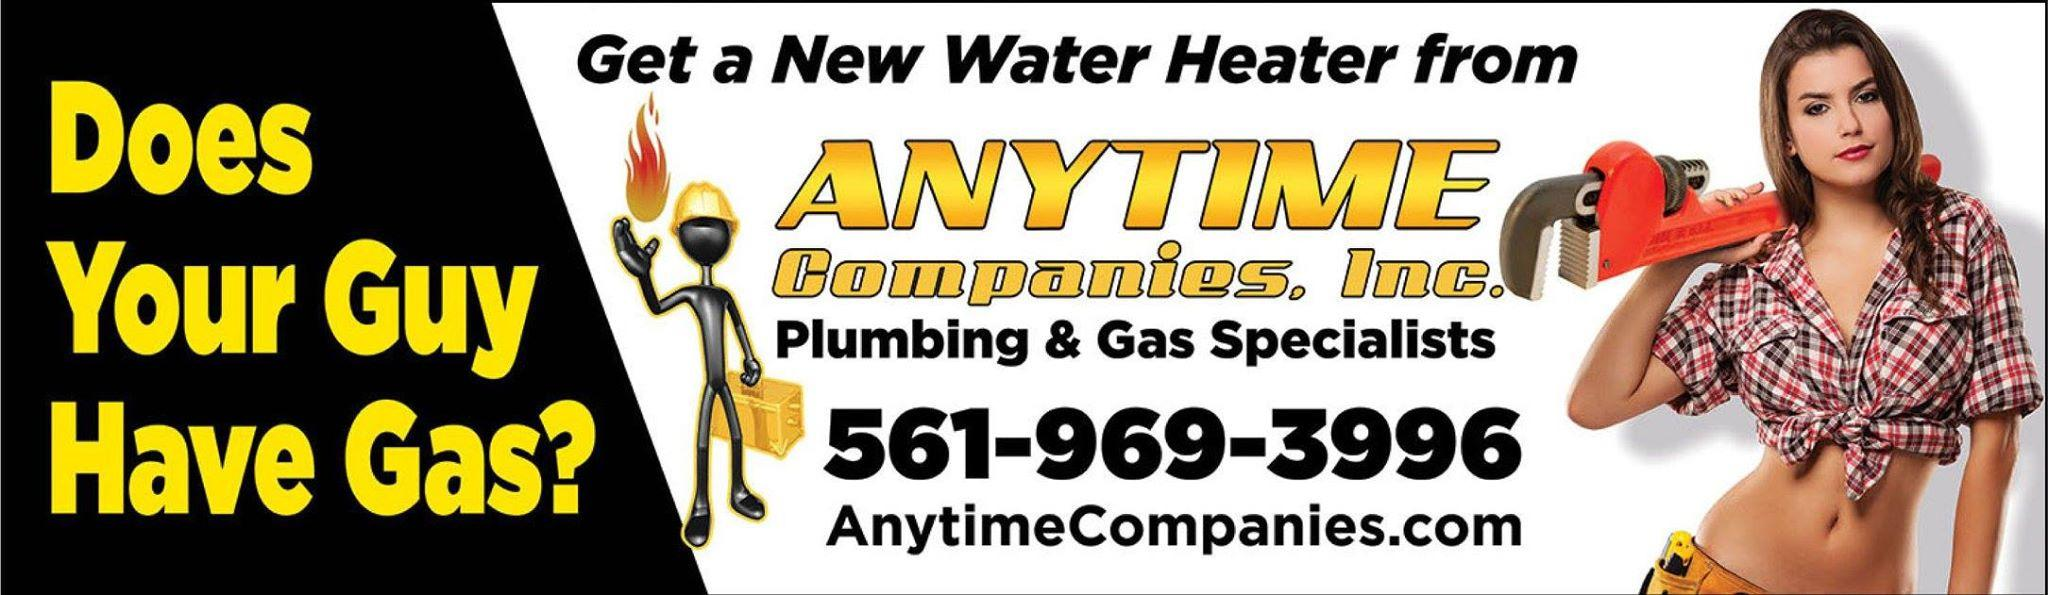 Anytime Plumbing and Gas Services, Inc. image 11